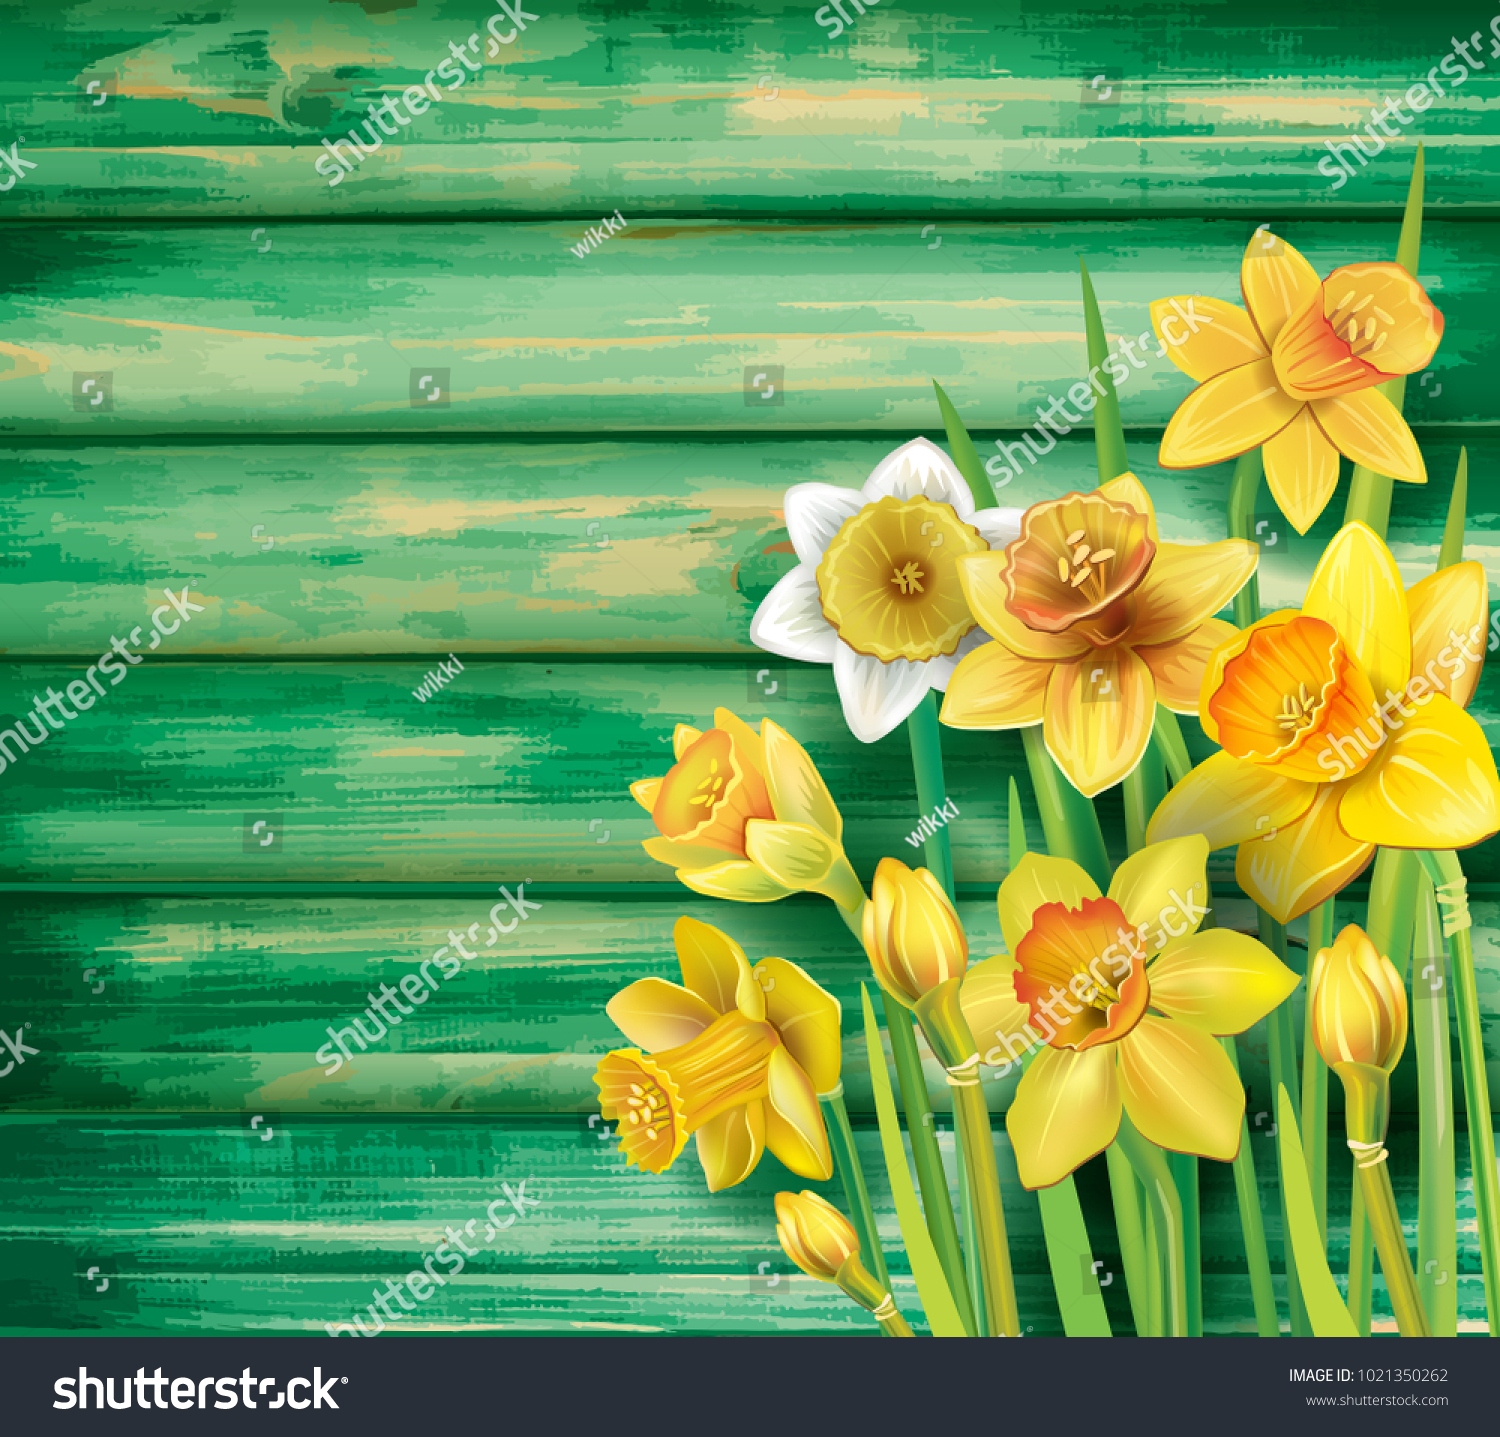 Daffodils Flowers On Wooden Background Stock Vector 1021350262     Daffodils flowers on the wooden background